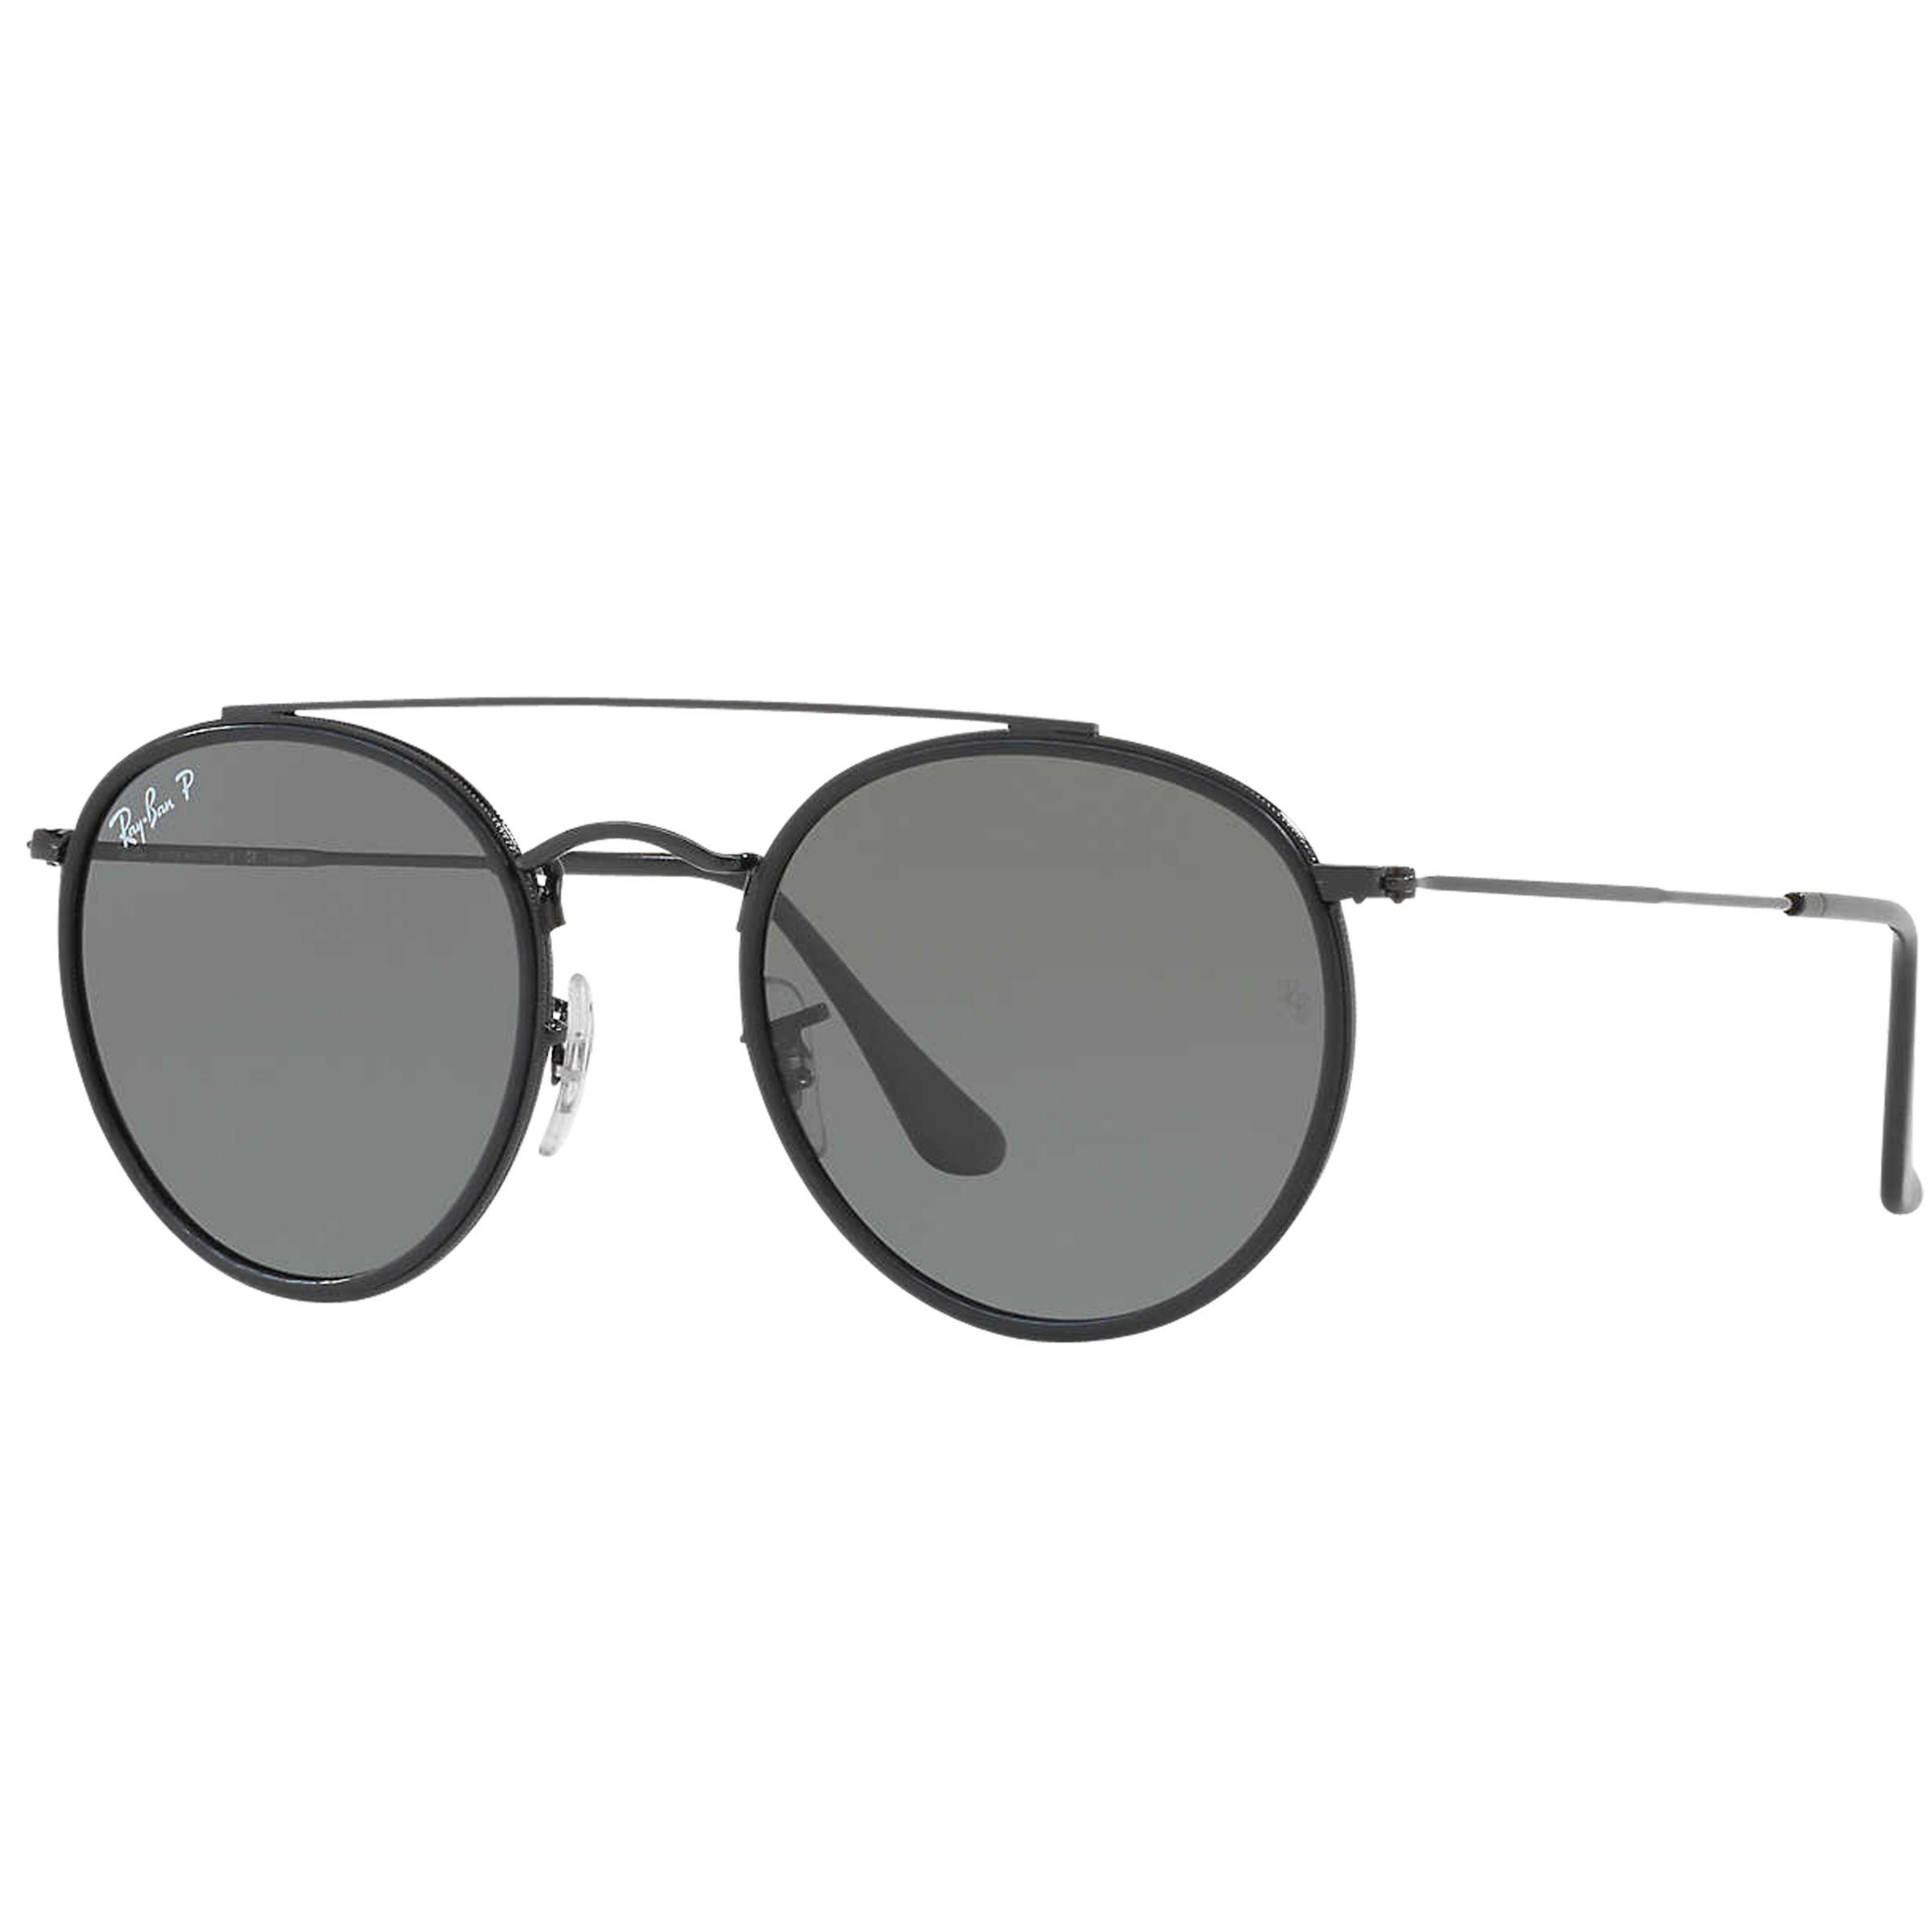 f4a8f3a6c7639 Ray-Ban Rb3647n Polarised Double Bridge Round Sunglasses in Gray for ...